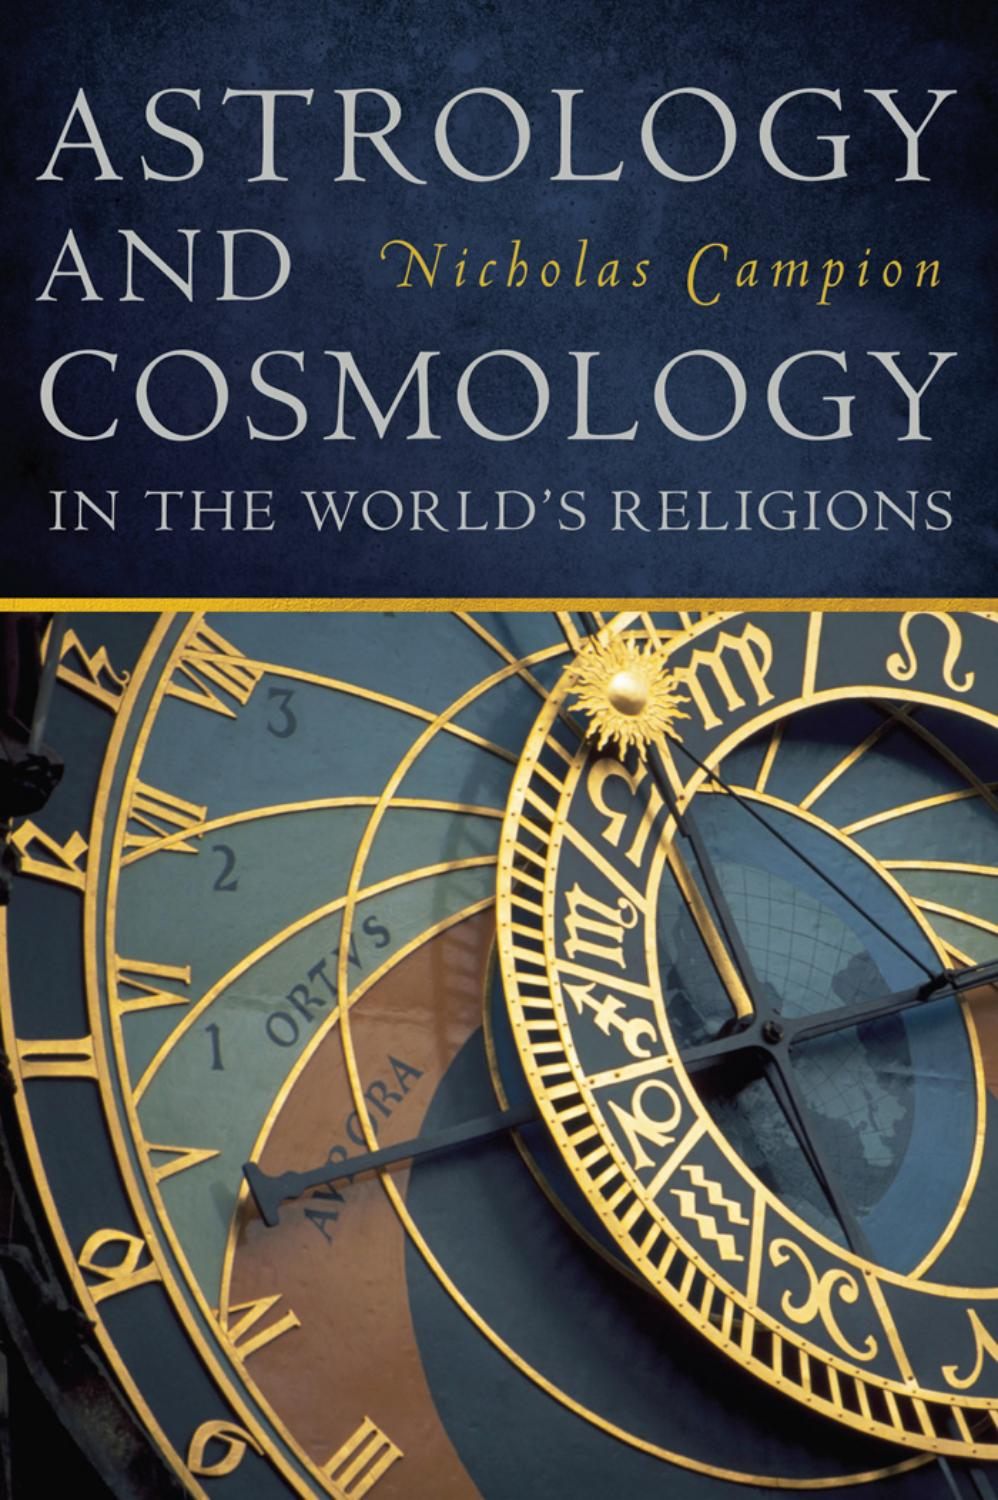 Astrology and cosmology by soul shine issuu nvjuhfo Gallery